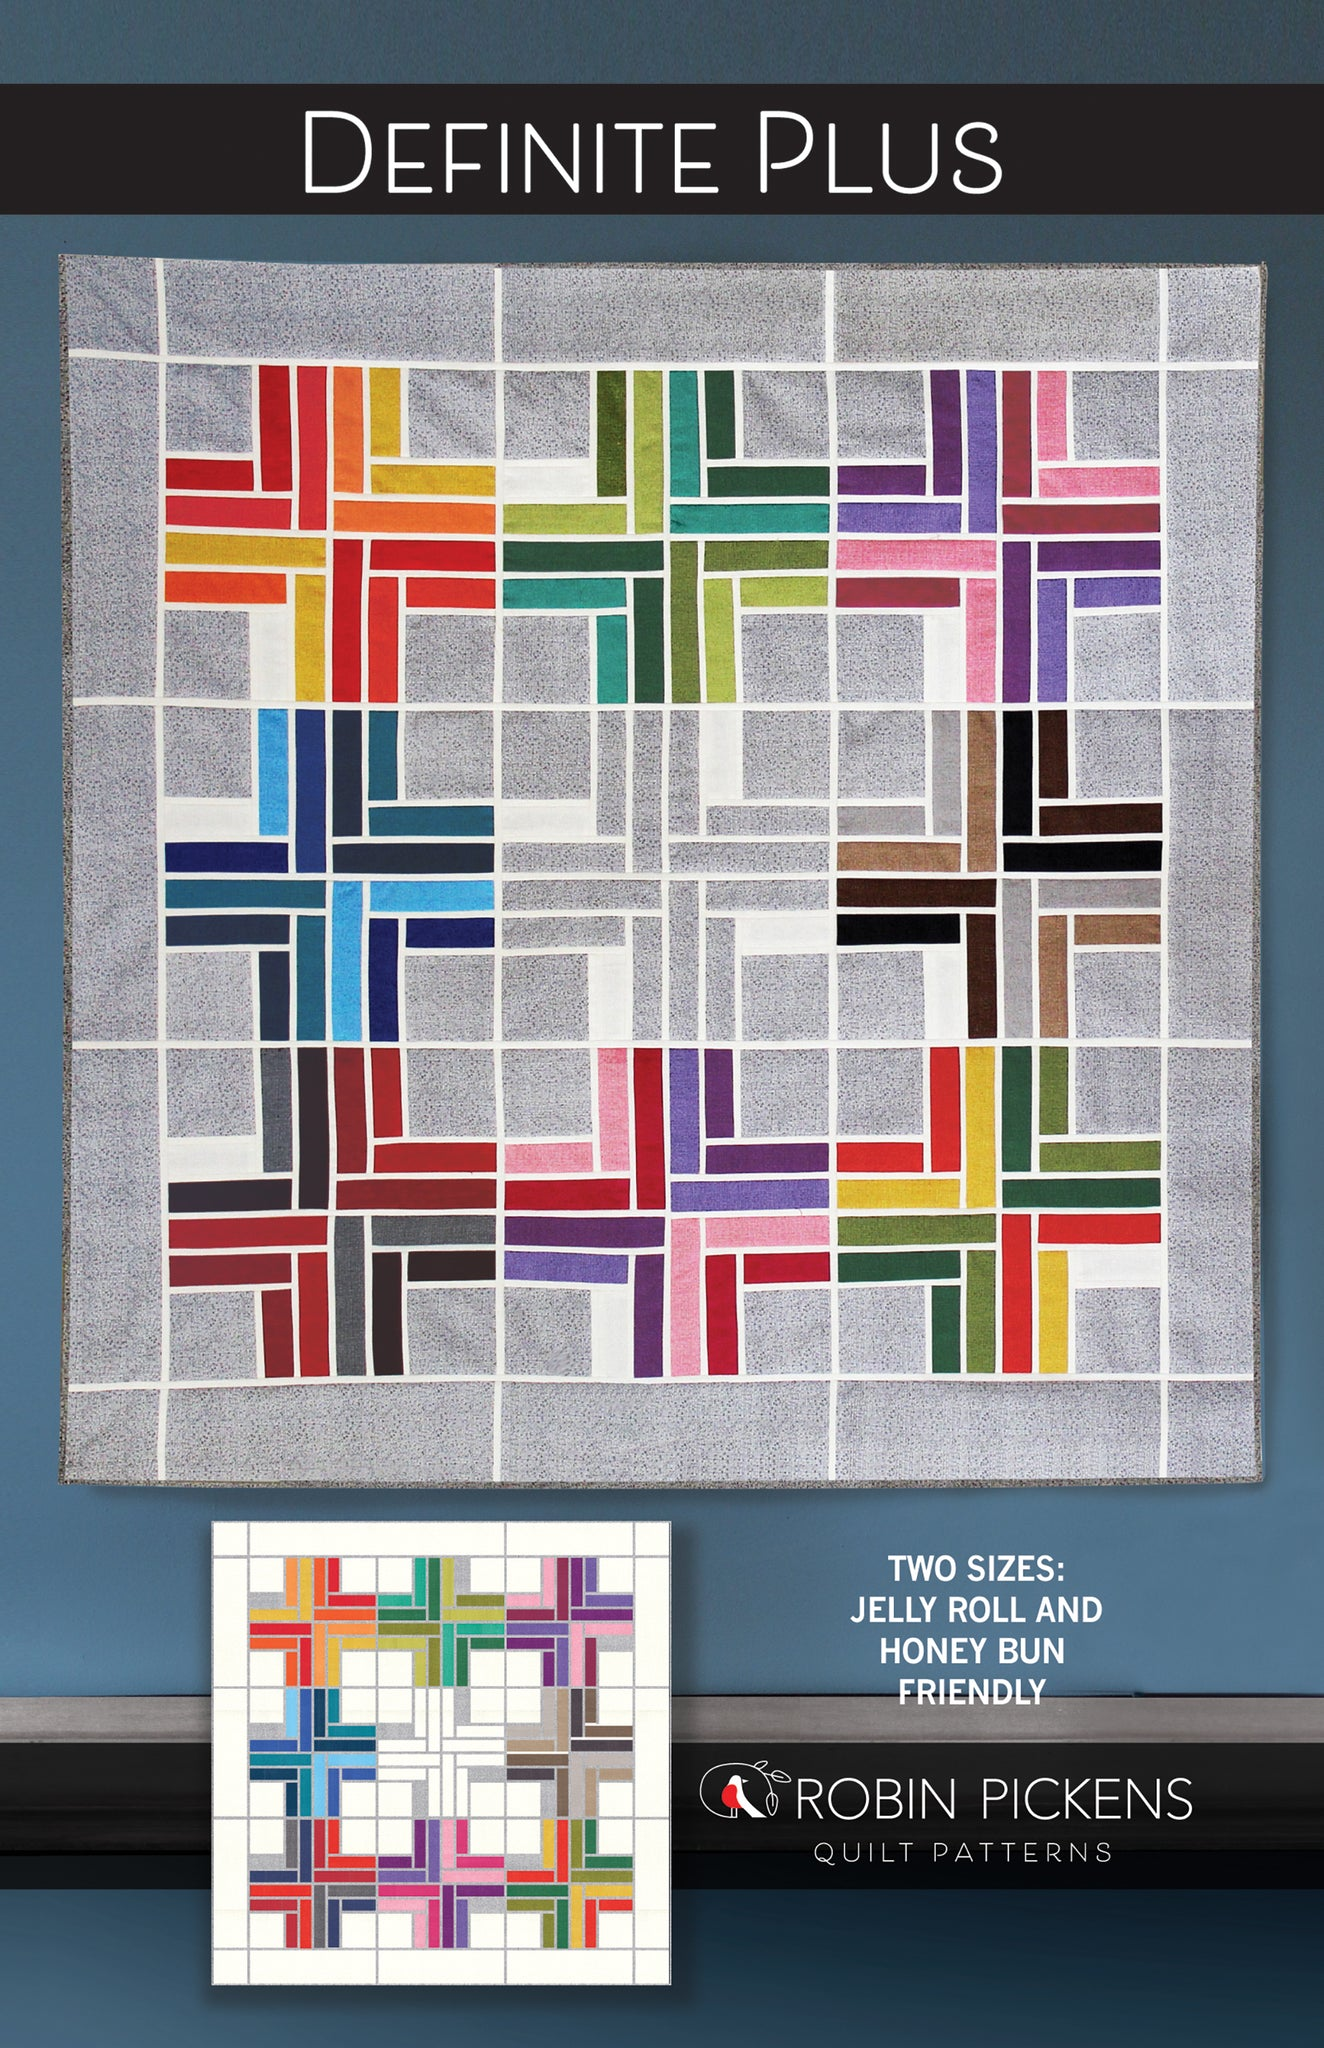 DEFINITE PLUS Quilt Pattern Printed Booklet by Robin Pickens, Jelly Roll, Honey Bun friendly